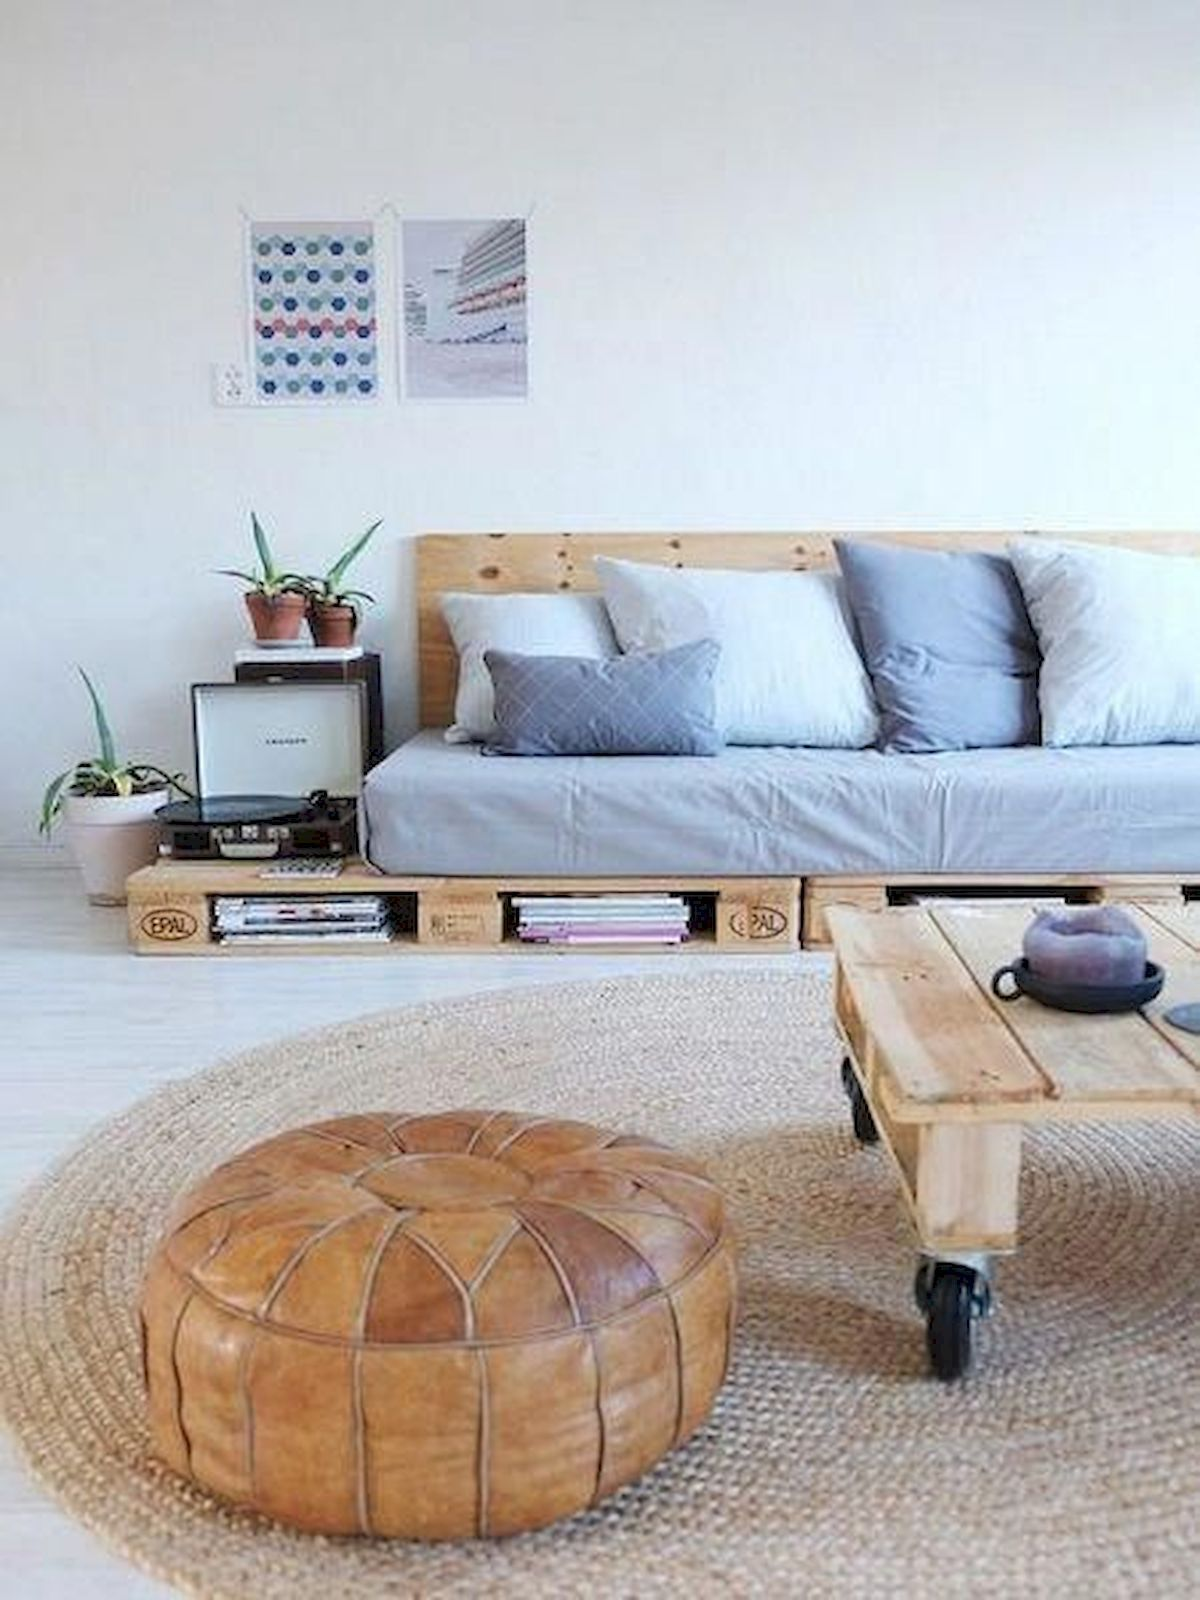 60 Summer Diy Projects Pallet Sofa Design Ideas And Remodel Worldecor Co Diy Living Room Furniture Diy Pallet Sofa Sofa Design #pallet #furniture #living #room